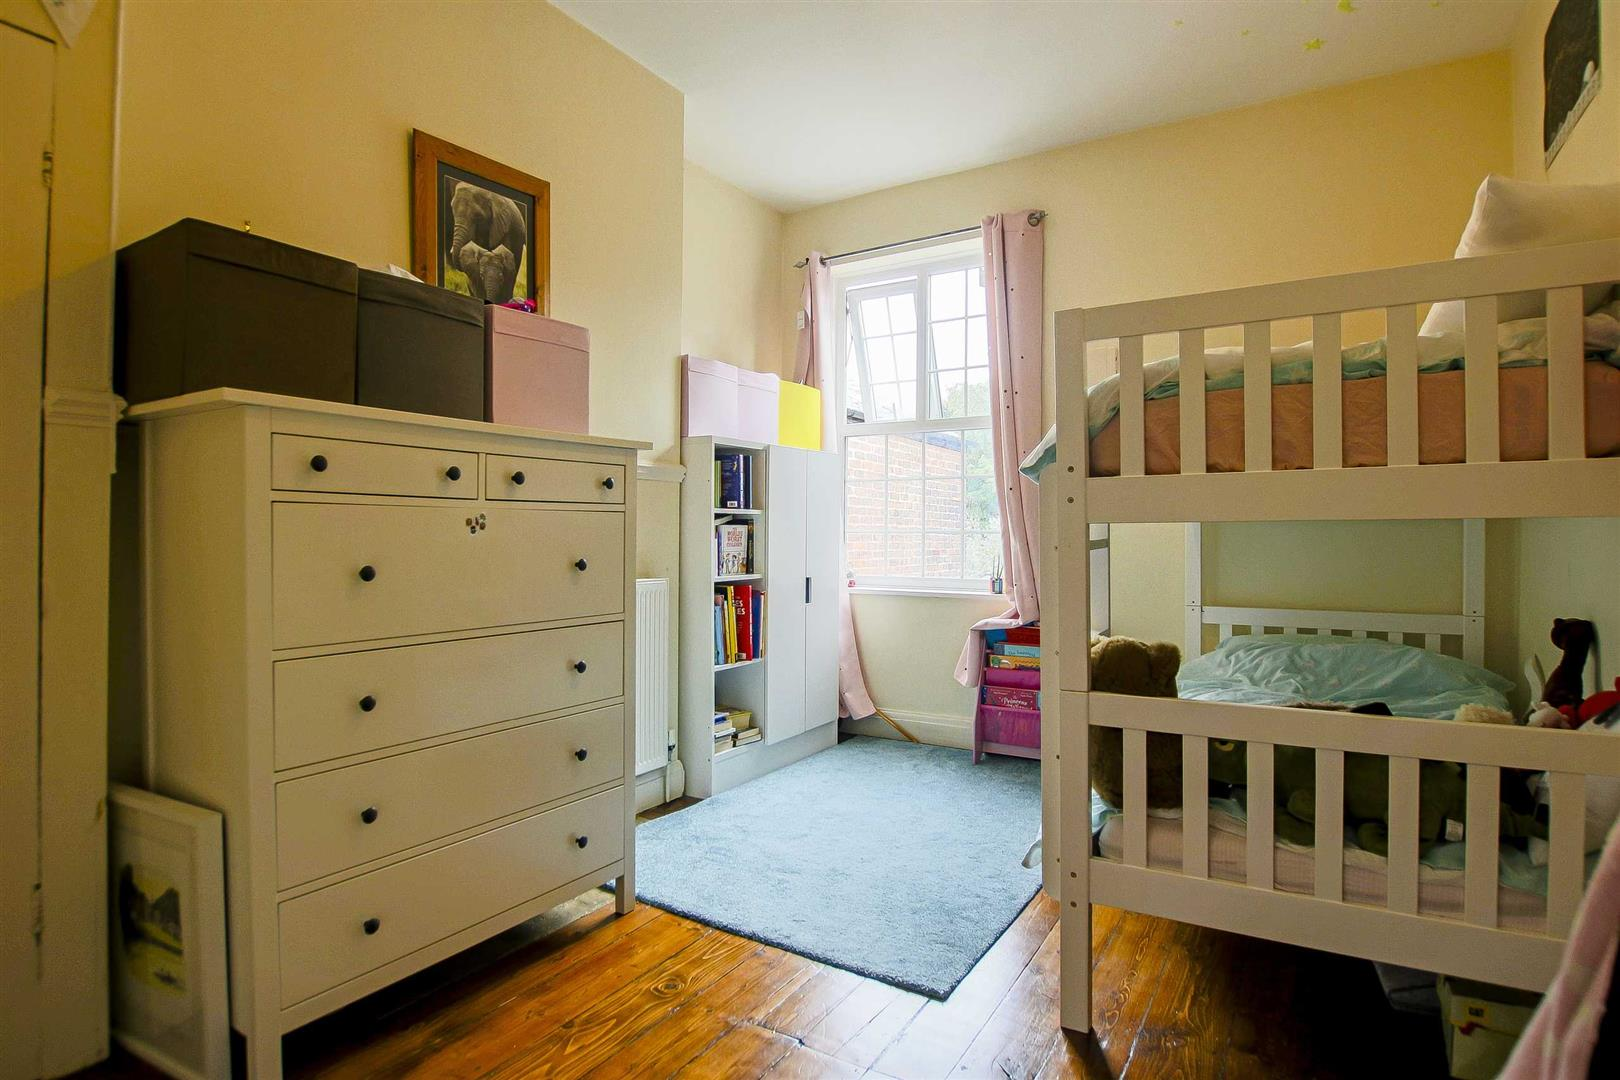 5 Bedroom Terraced House For Sale - Image 6